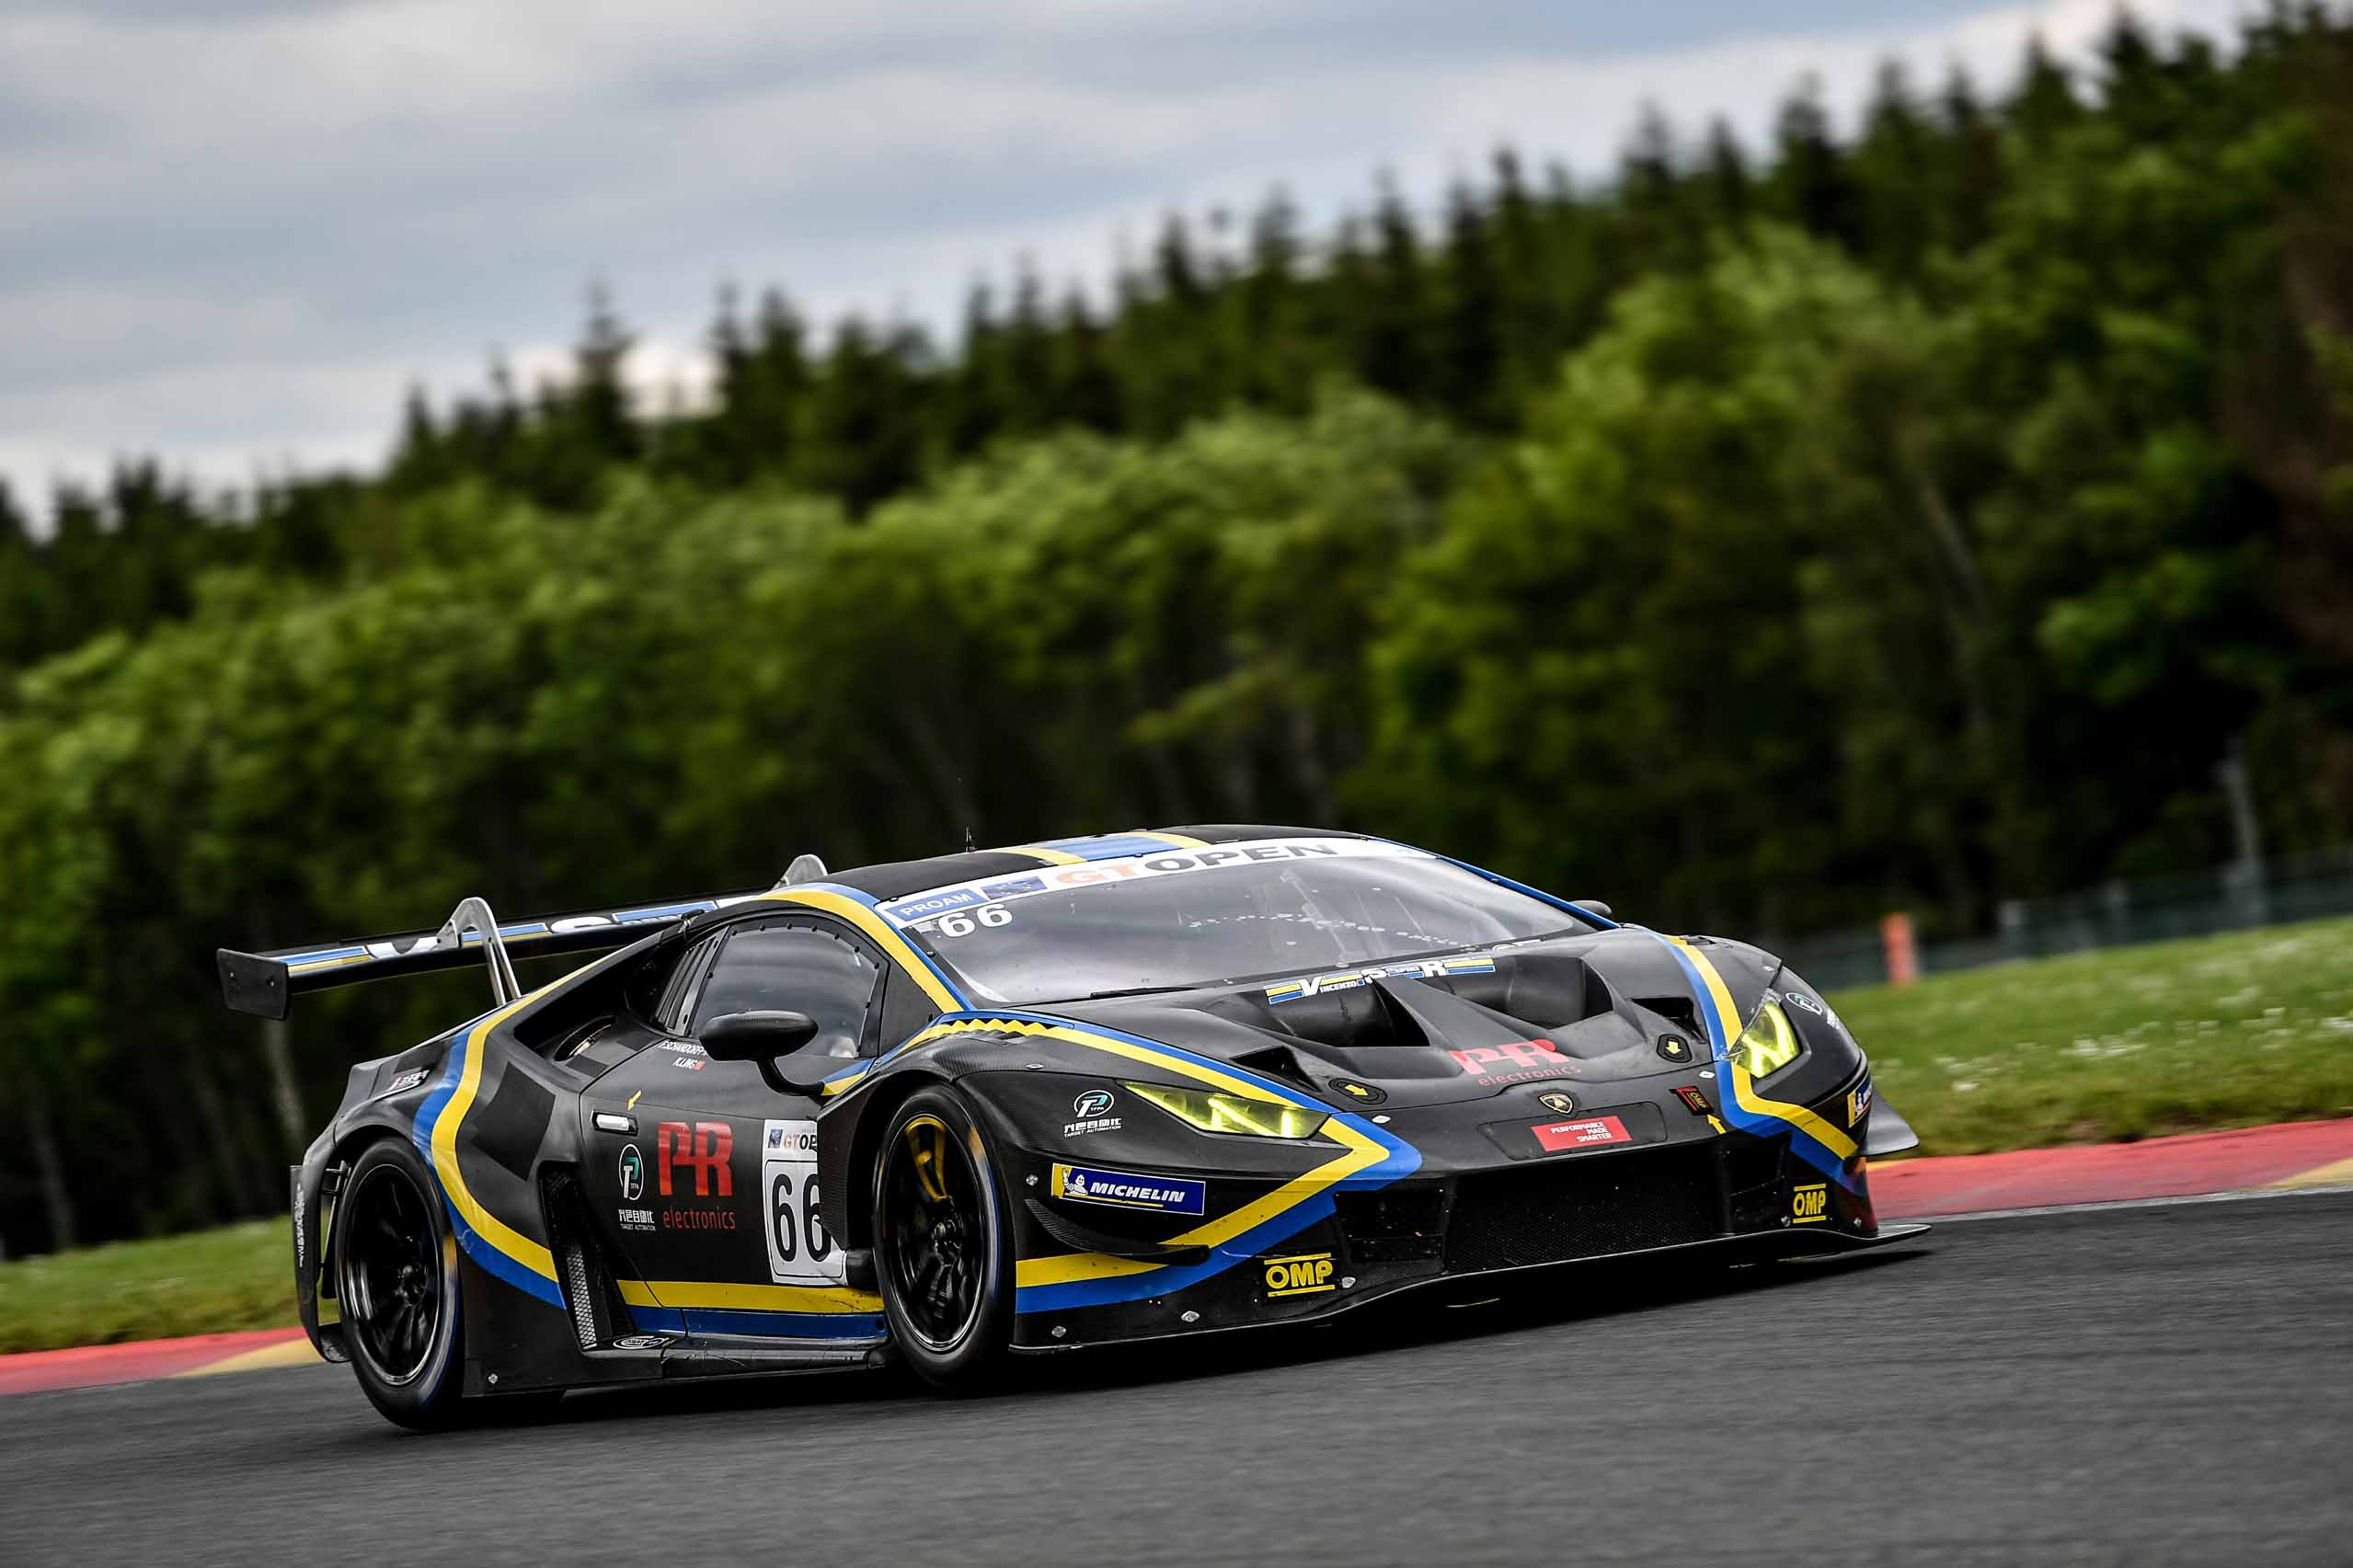 SPA PODIUM KEEPS LING AND SCHANDORFF IN CHAMPIONSHIP HUNT